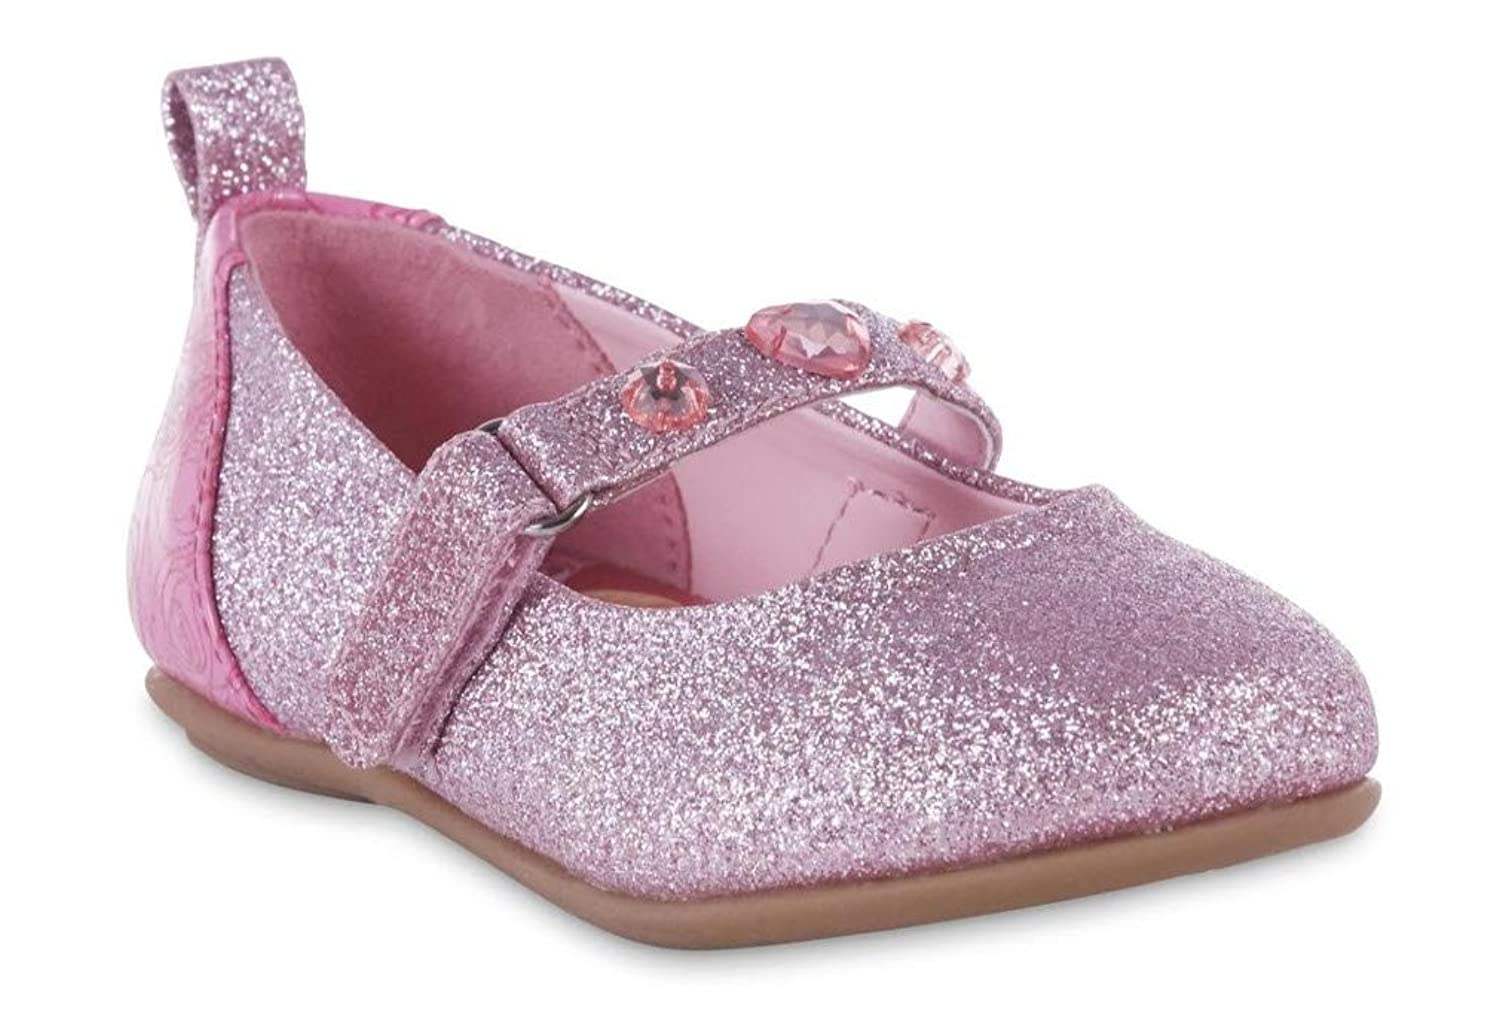 ACI Disney Girls' Princess Flat Girls Dress Shoes